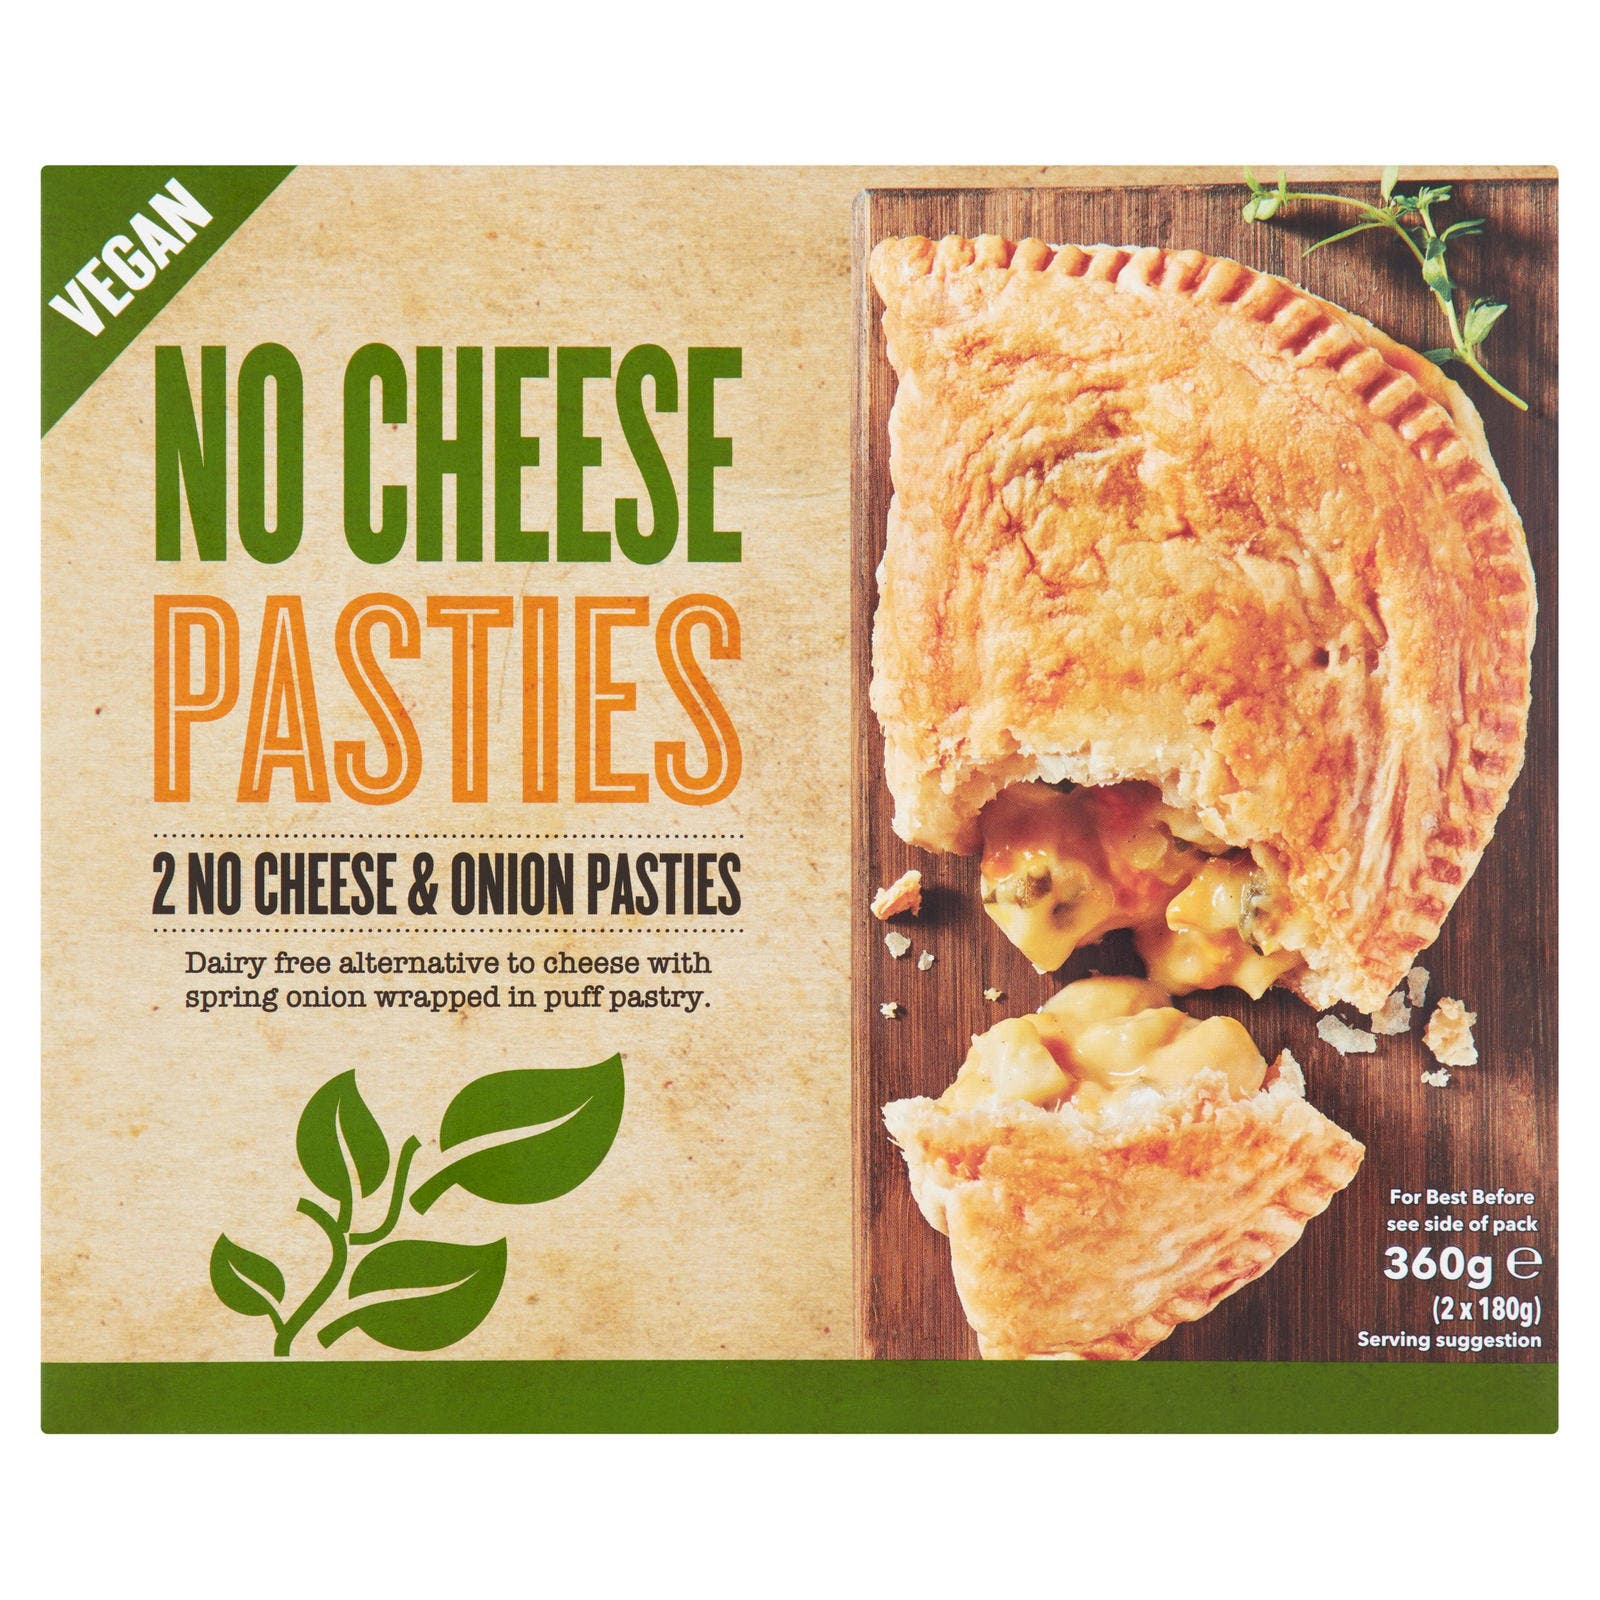 No Cheese Pasty Contains Milk